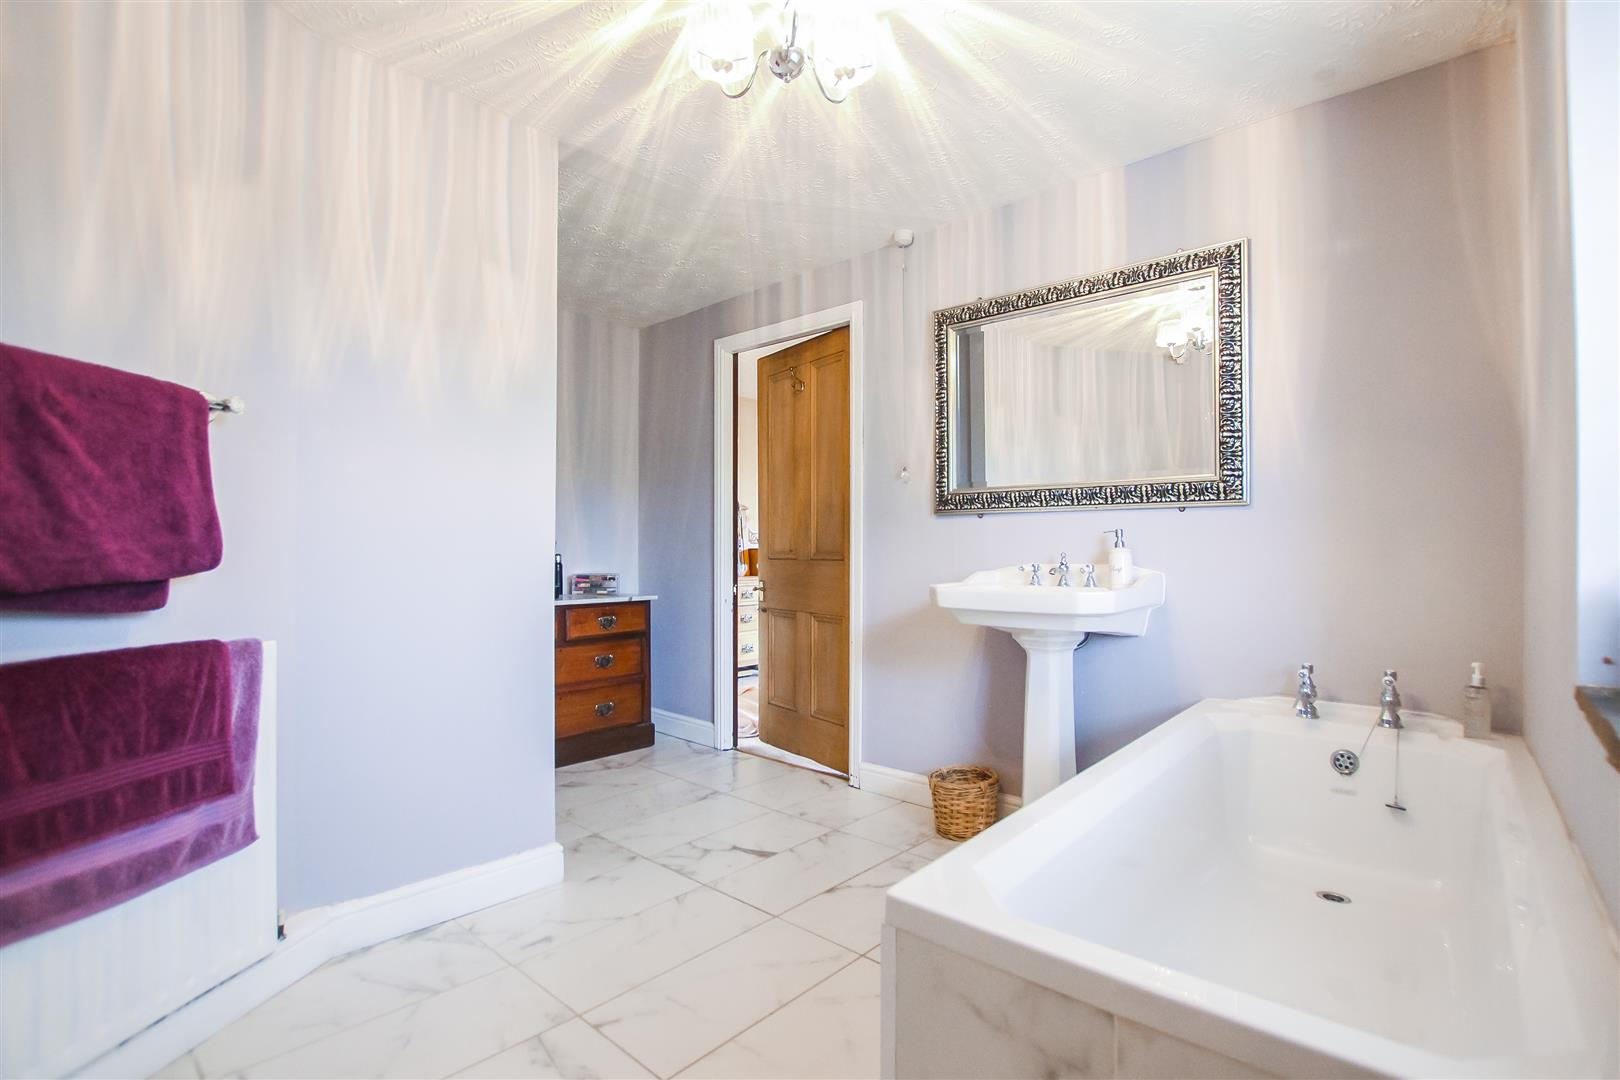 5 Bedroom Barn Conversion For Sale - Image 46